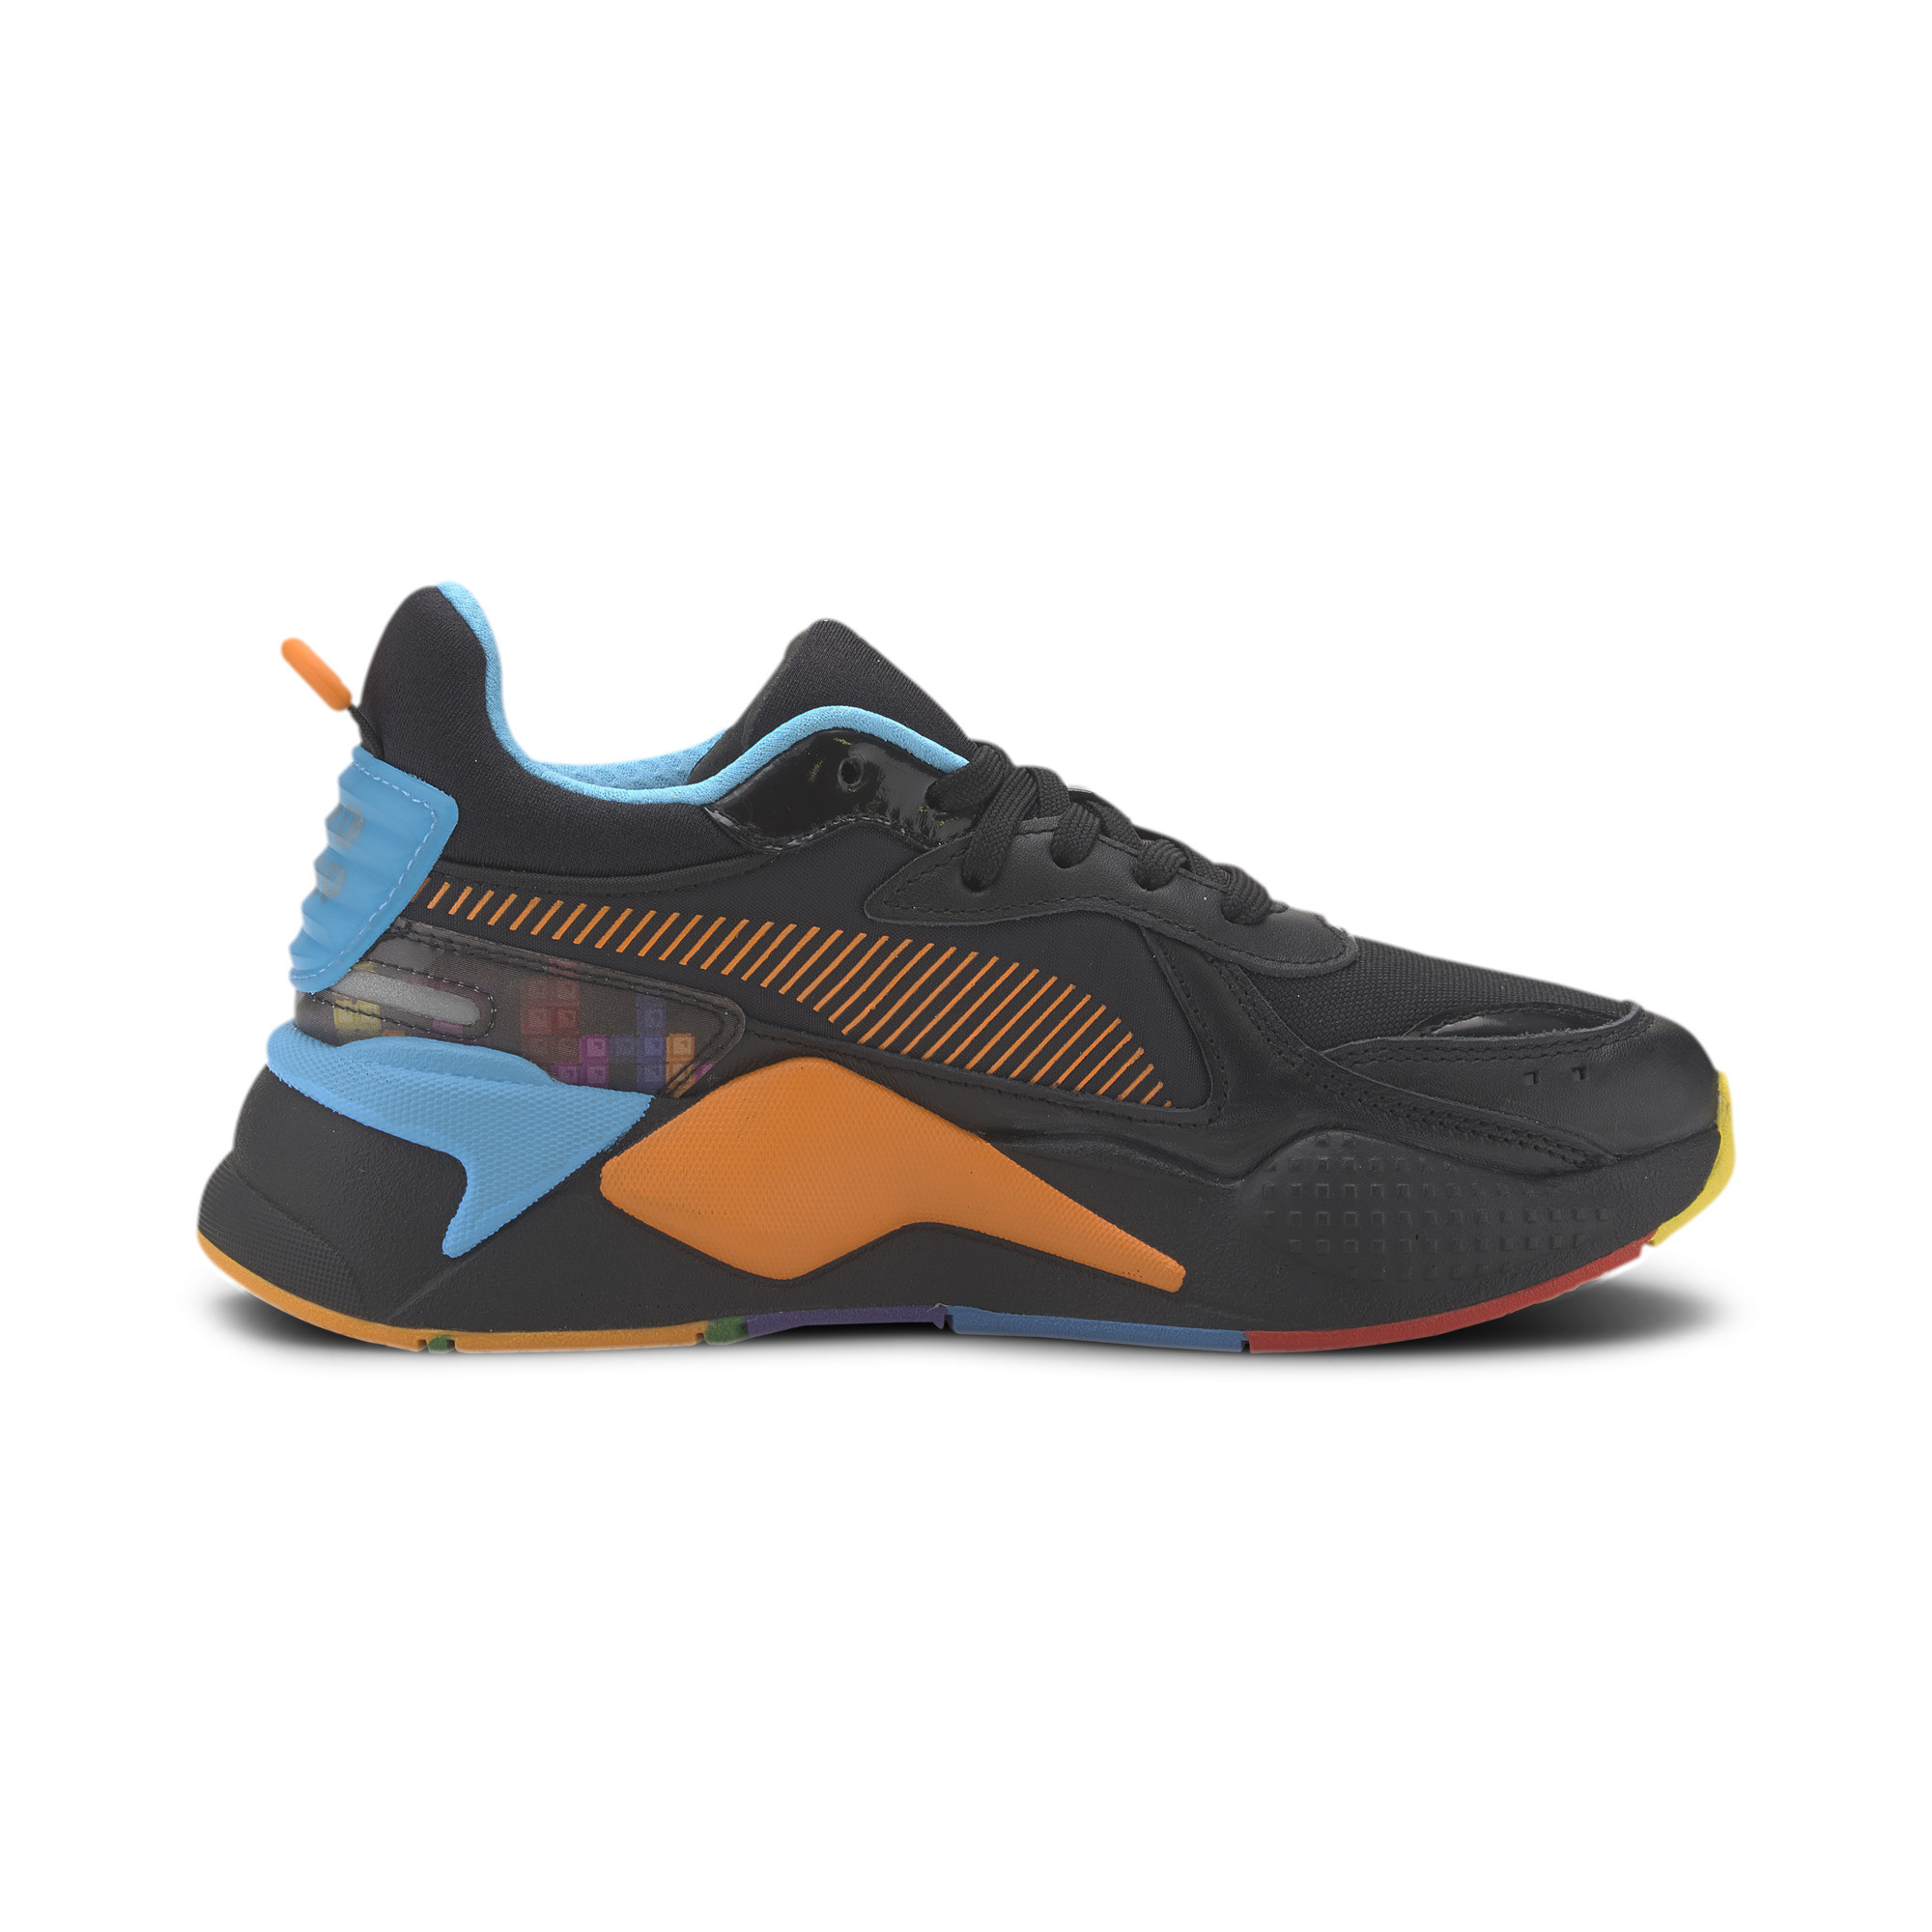 PUMA-PUMA-x-TETRIS-RS-X-Sneakers-JR-Kids-Shoe-Kids thumbnail 6